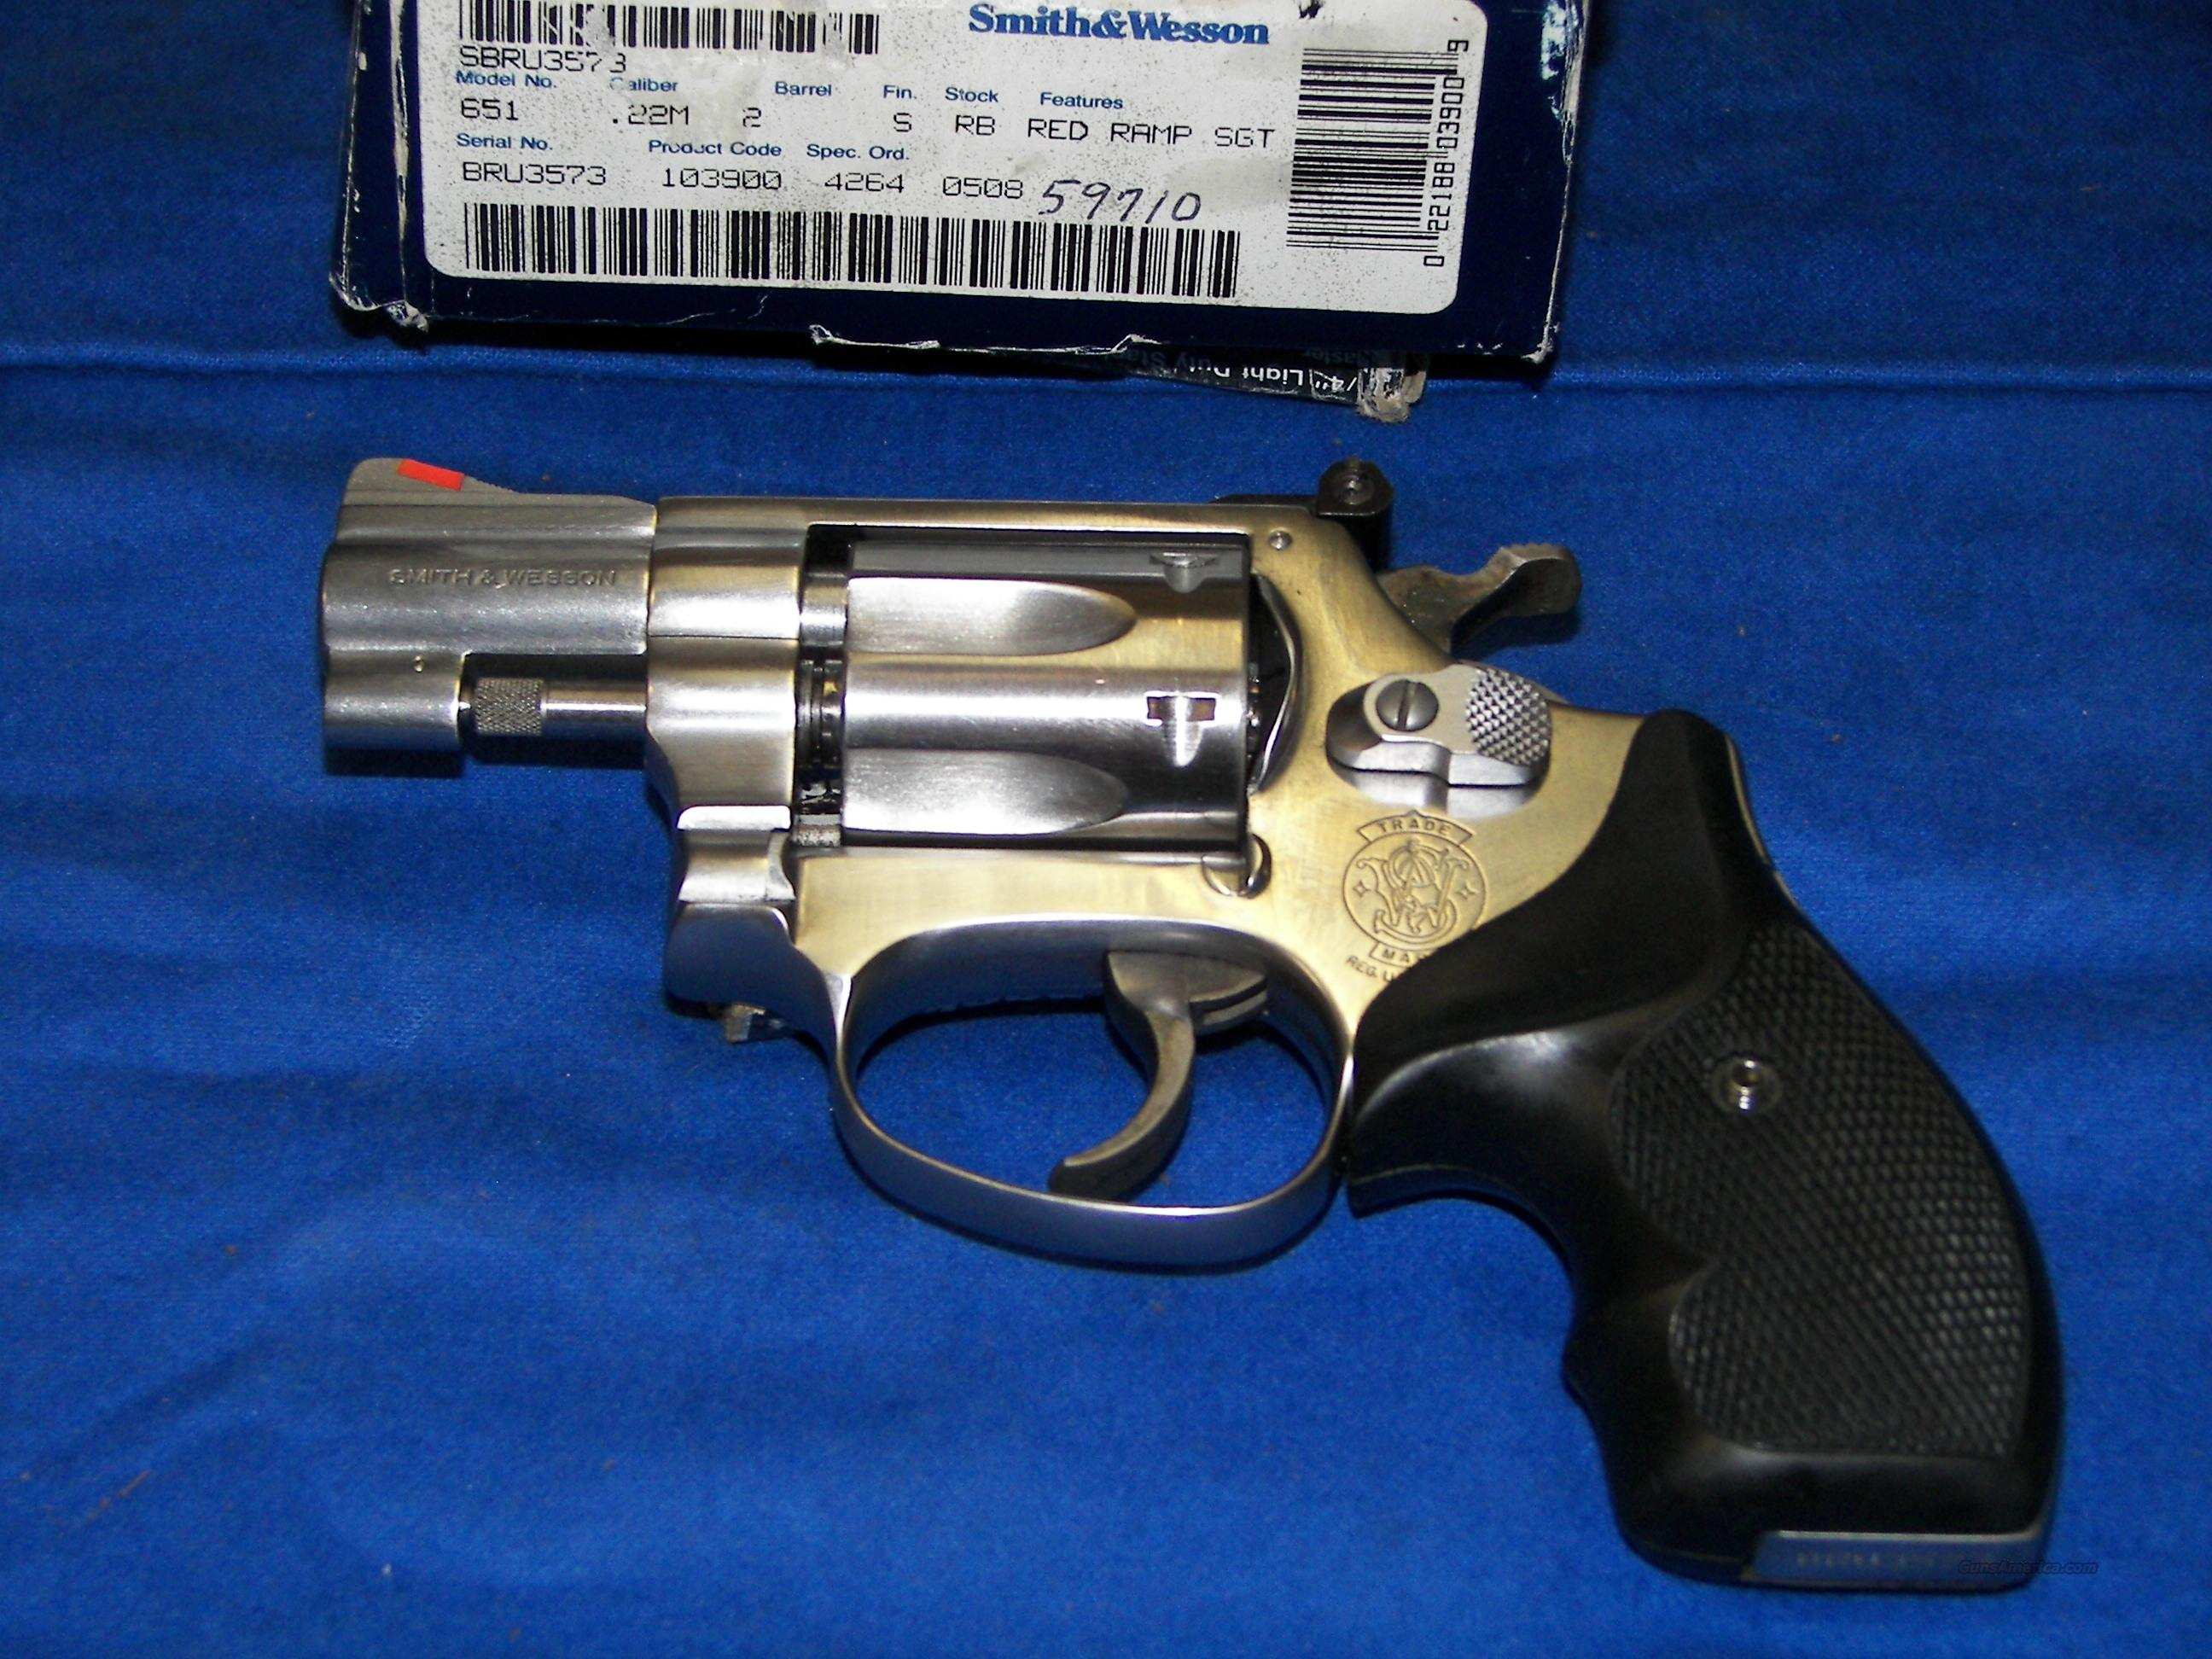 Sale Pending S Amp W 651 1 22 Mag 2 Quot Kit Gun For Sale